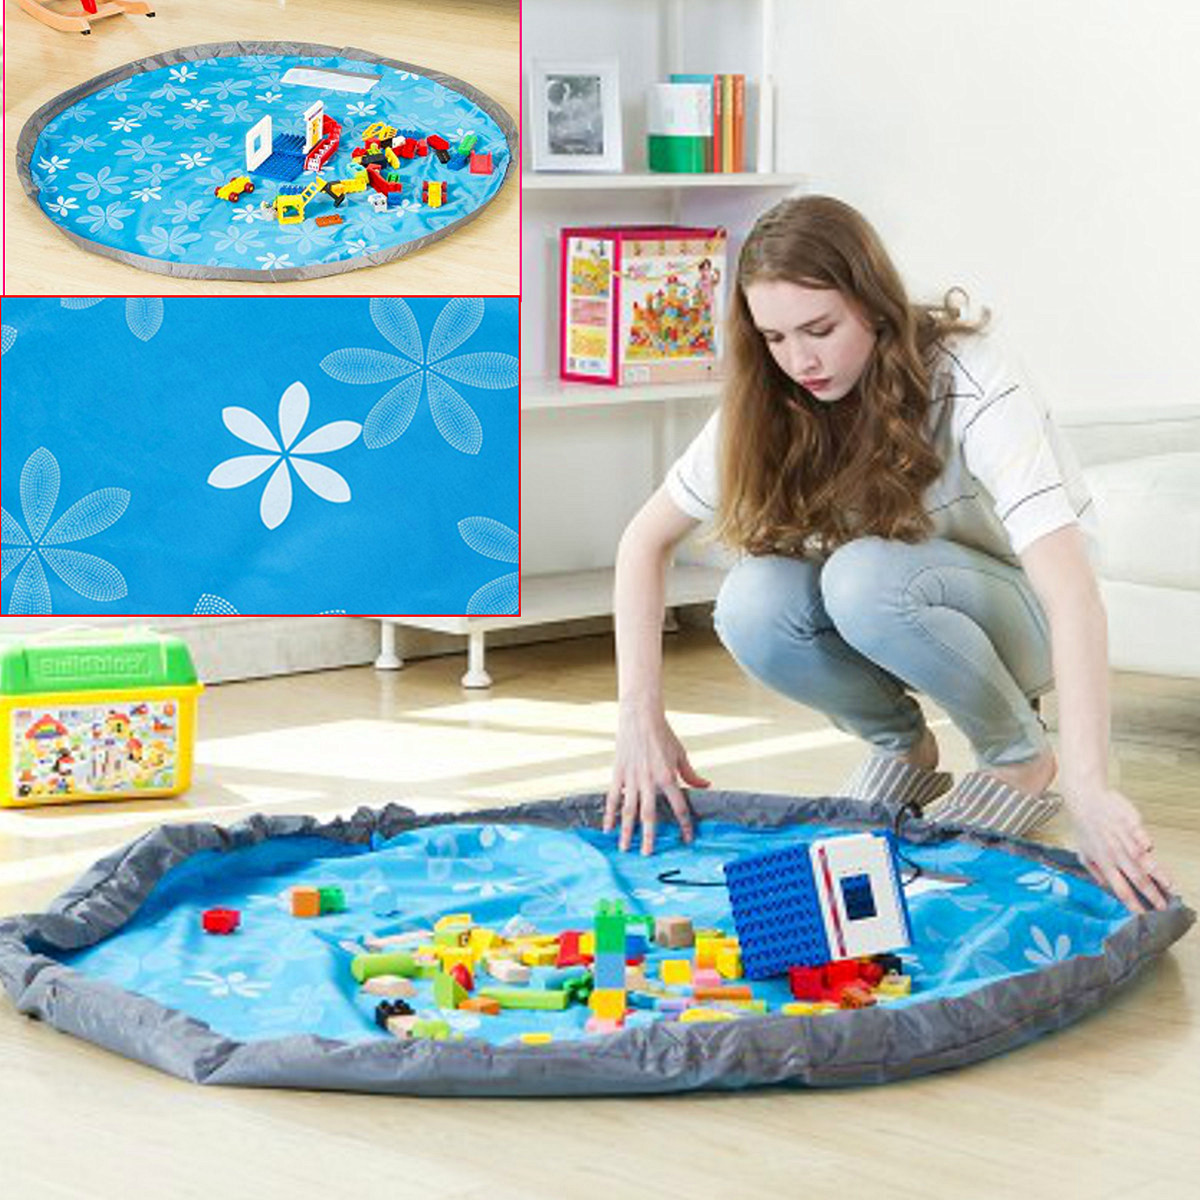 60 inch Portable Indoor/Outdoor Water Resistant Childrens Infant Kid Baby Children Floor Play Mat Toy Storage Bags Organizer In Portable Shoulder Bag Large Net Blanket Rug Boxes